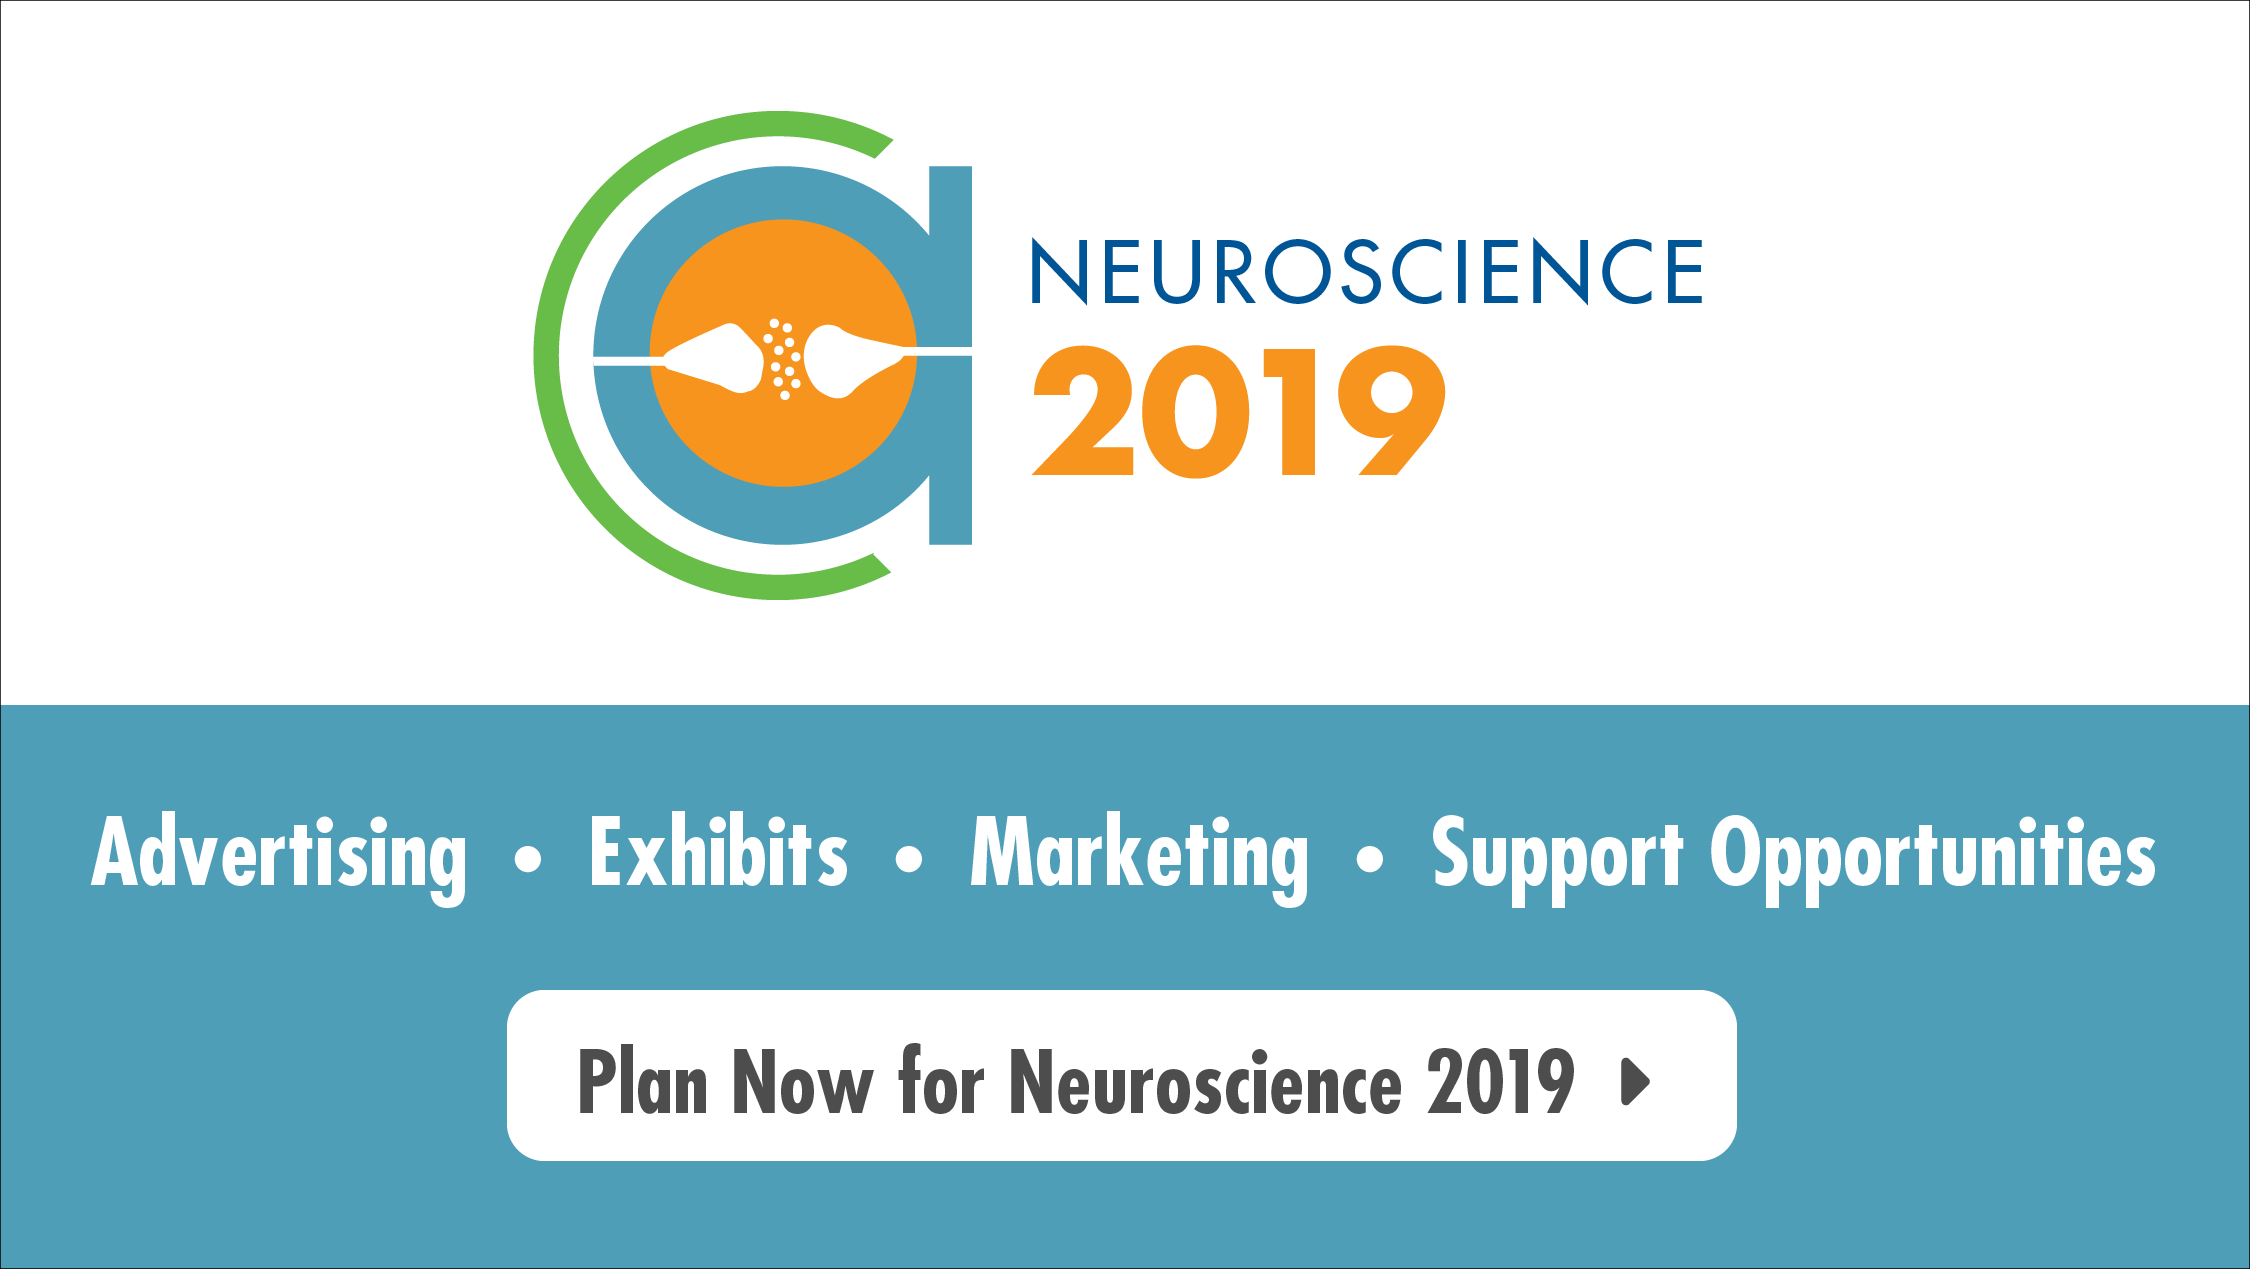 Exhibits, Advertising, Marketing, Support Opportunities advertisement for Neuroscience 2019